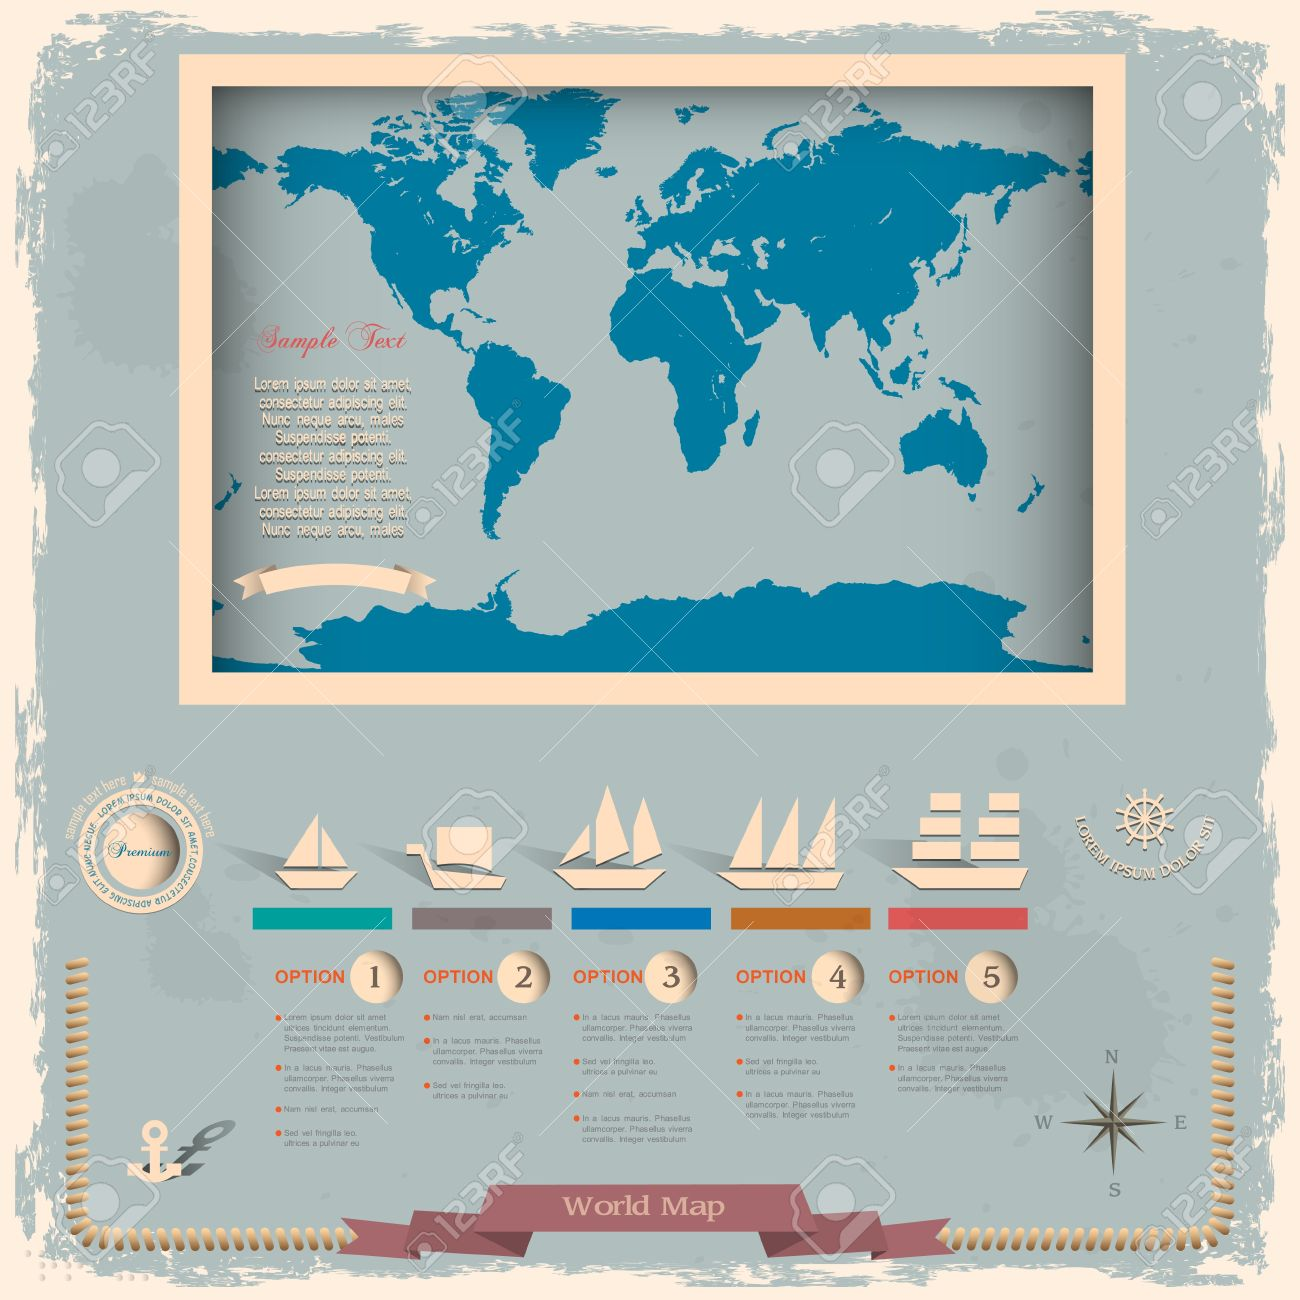 Retro style world map with nautical design elements Stock Vector - 14370828